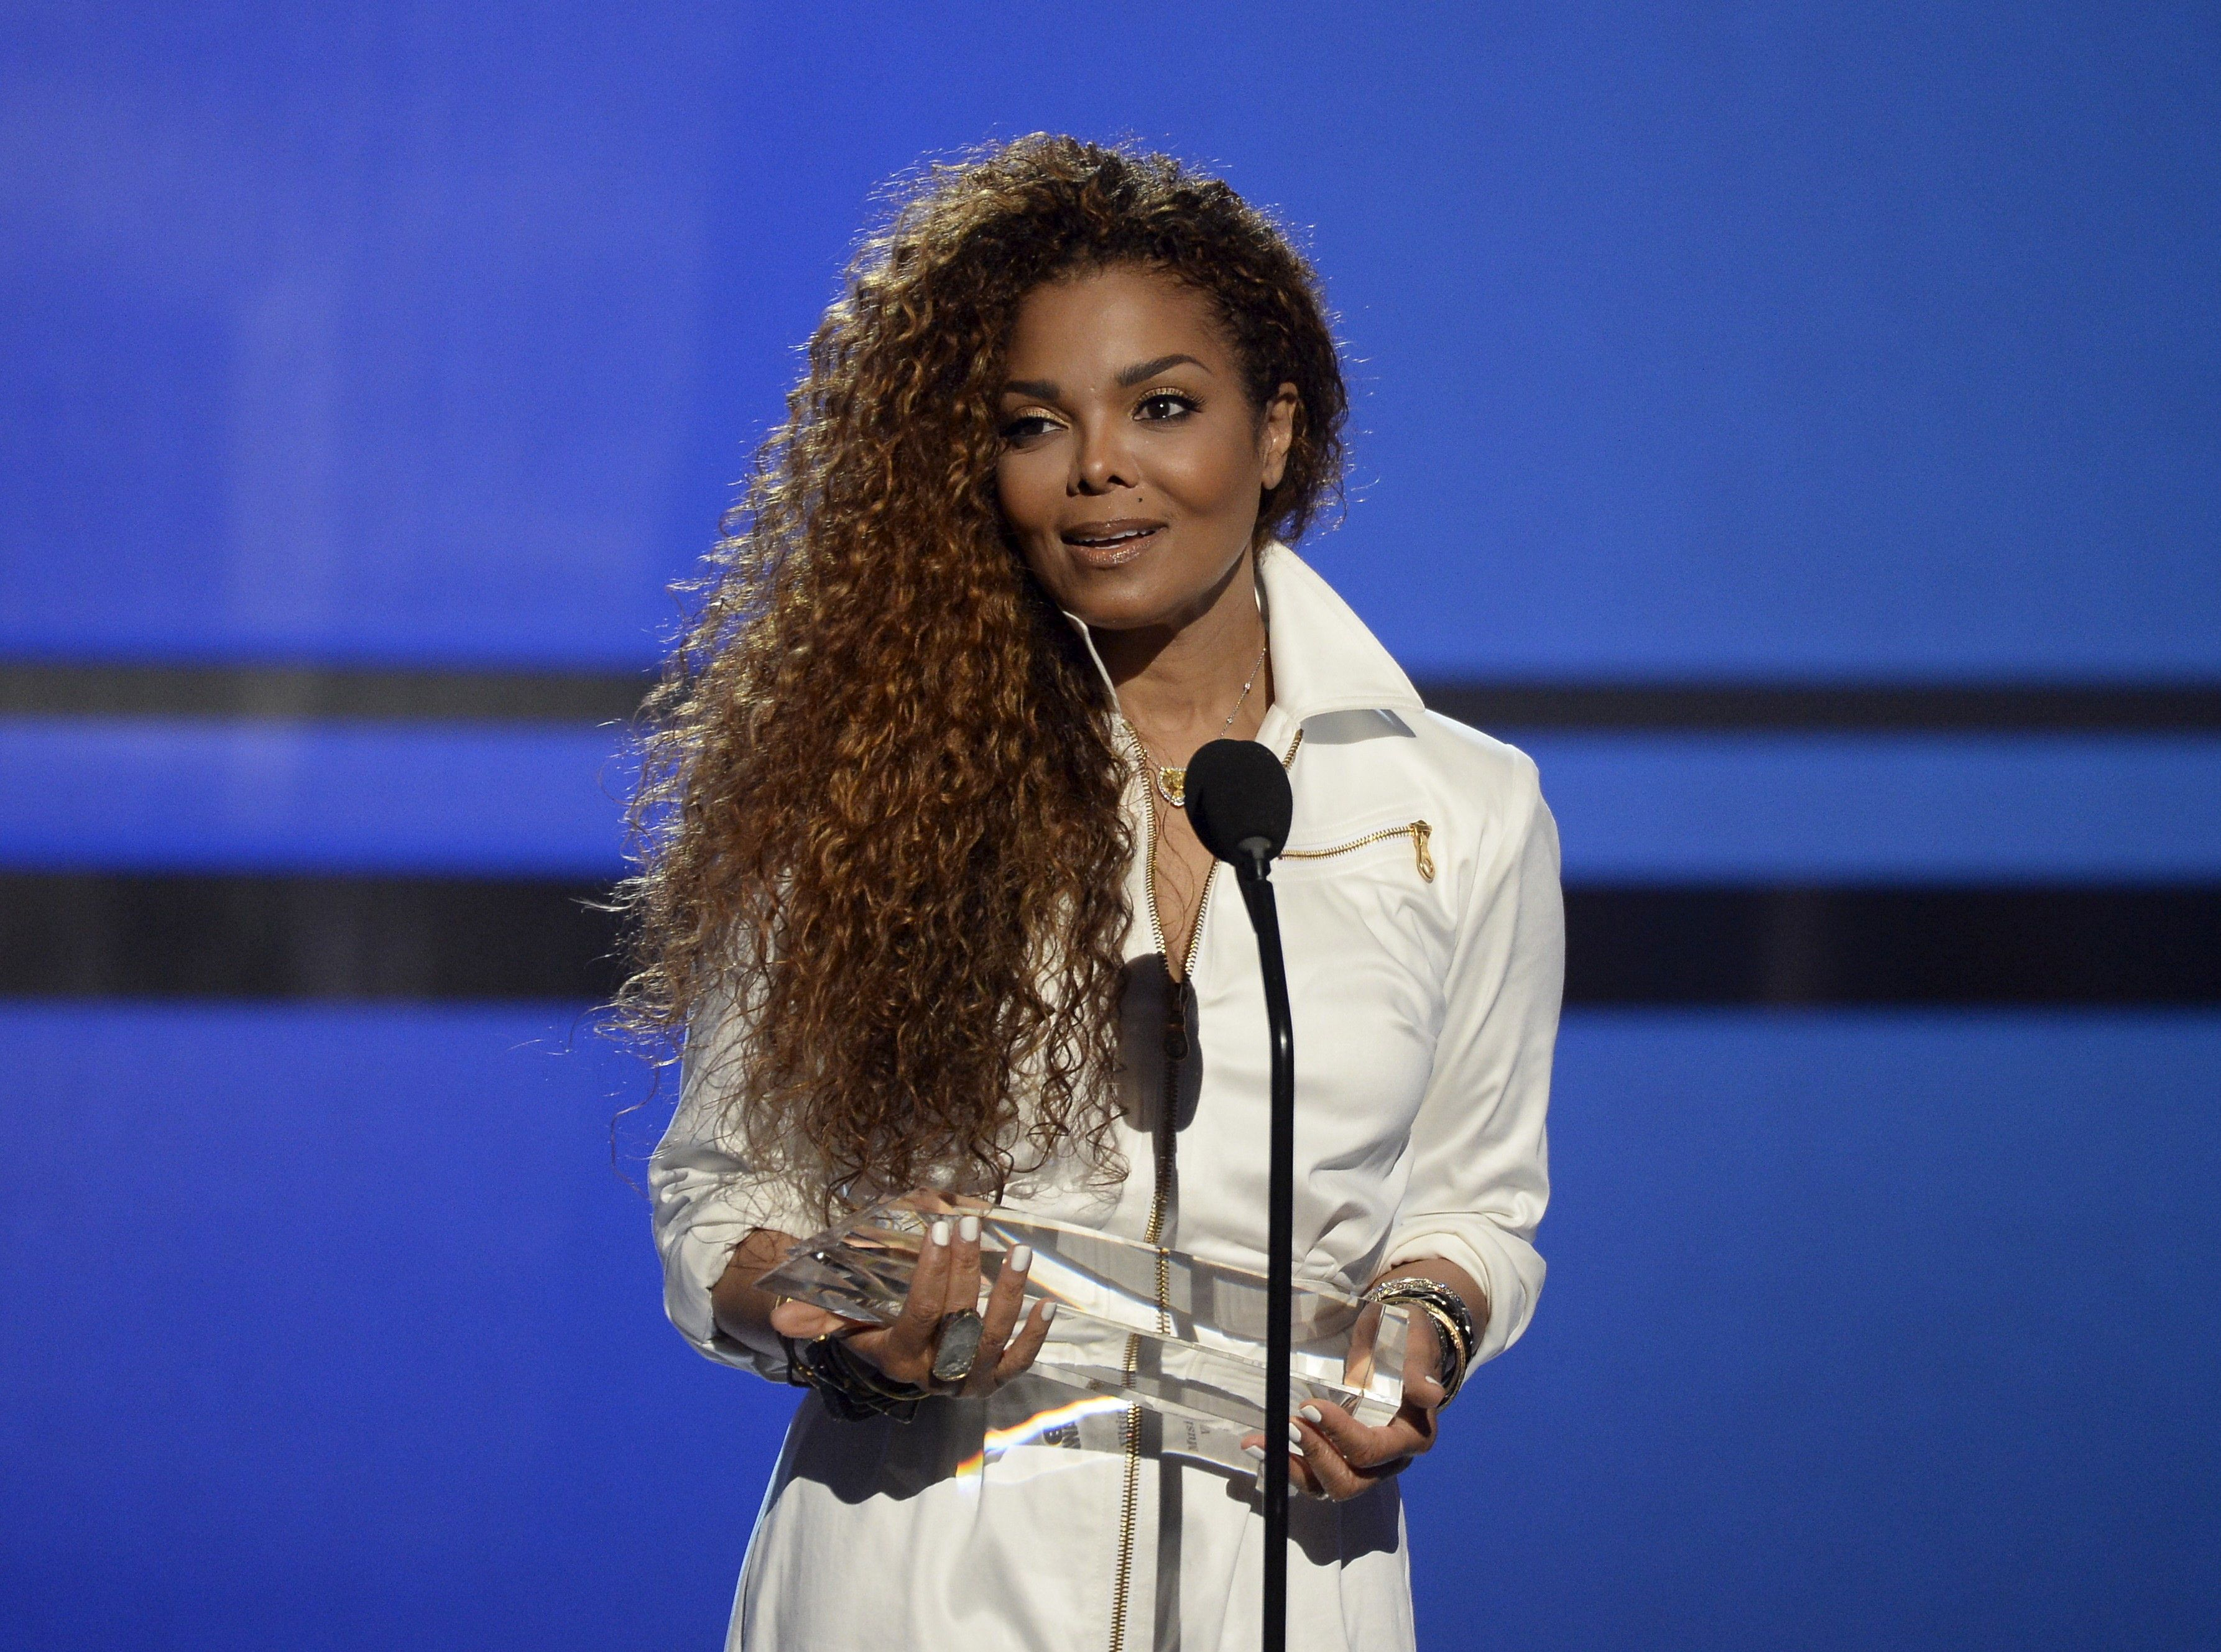 """Hinting at a possible pregnancy, Janet Jackson announced on April 6 that she was temporarily halting her world tour because of a """"sudden change"""" that required her and her husband to plan a family."""